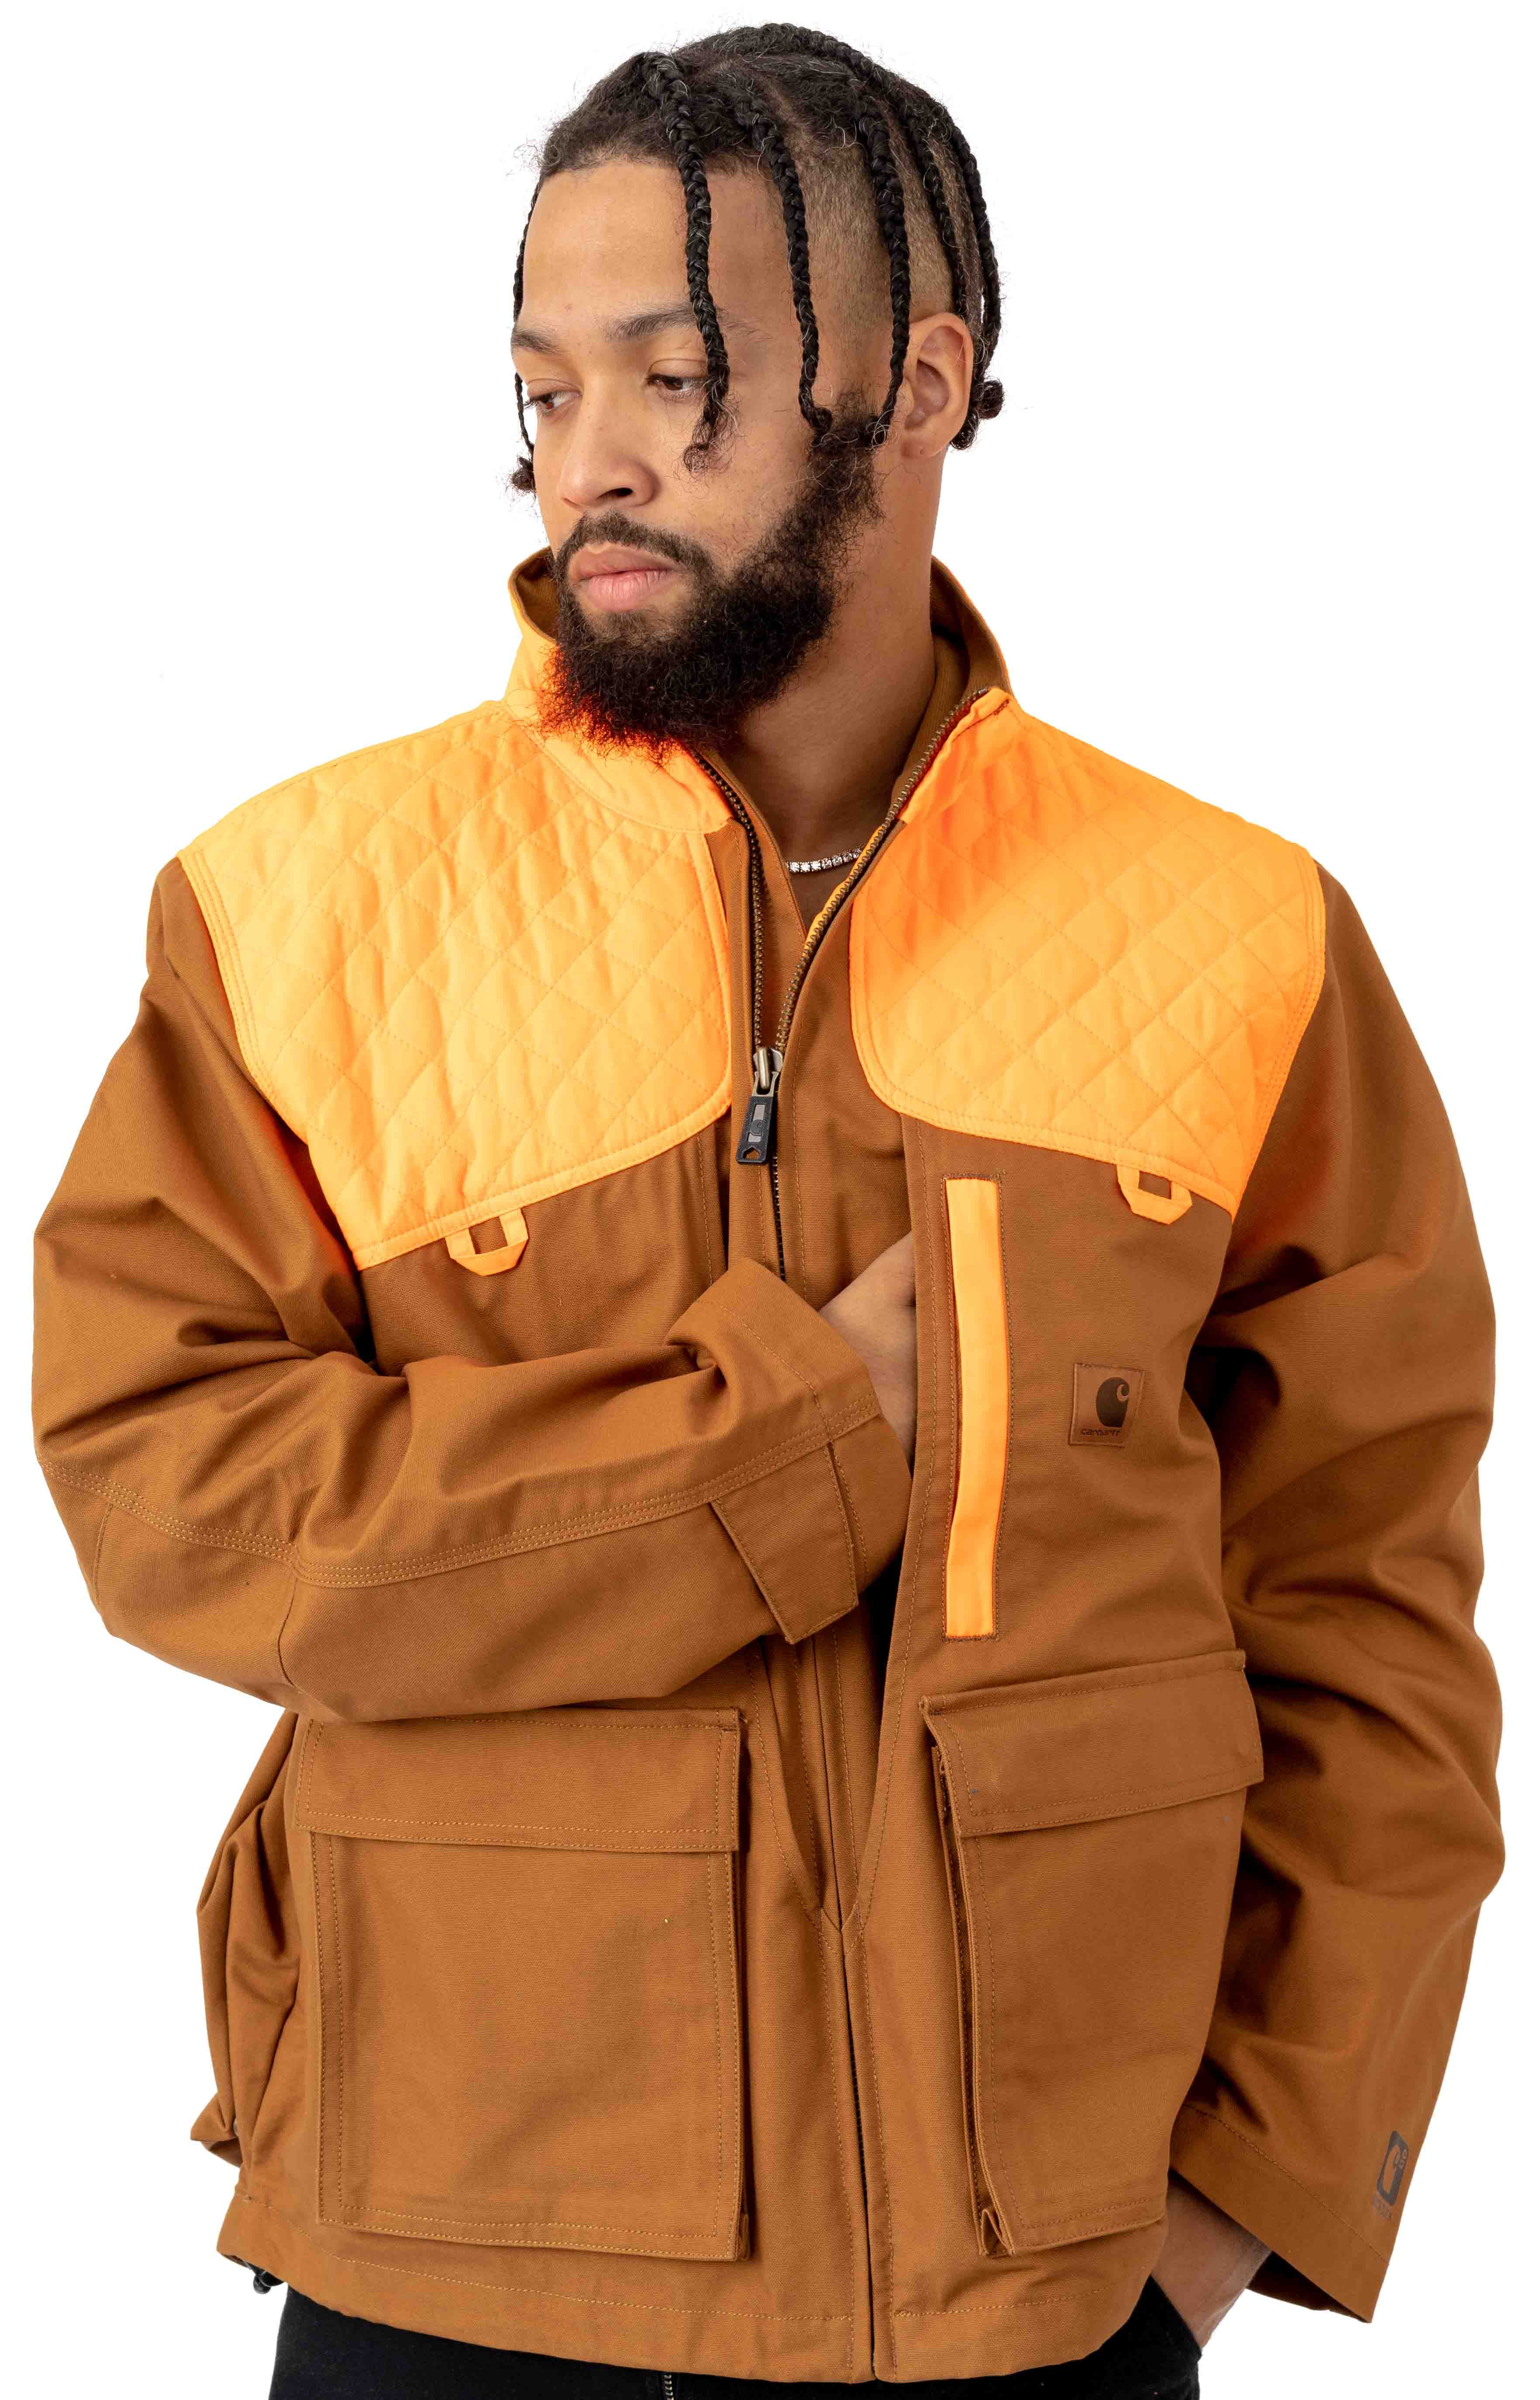 (102800) Upland Field Jacket - Carhartt Brown